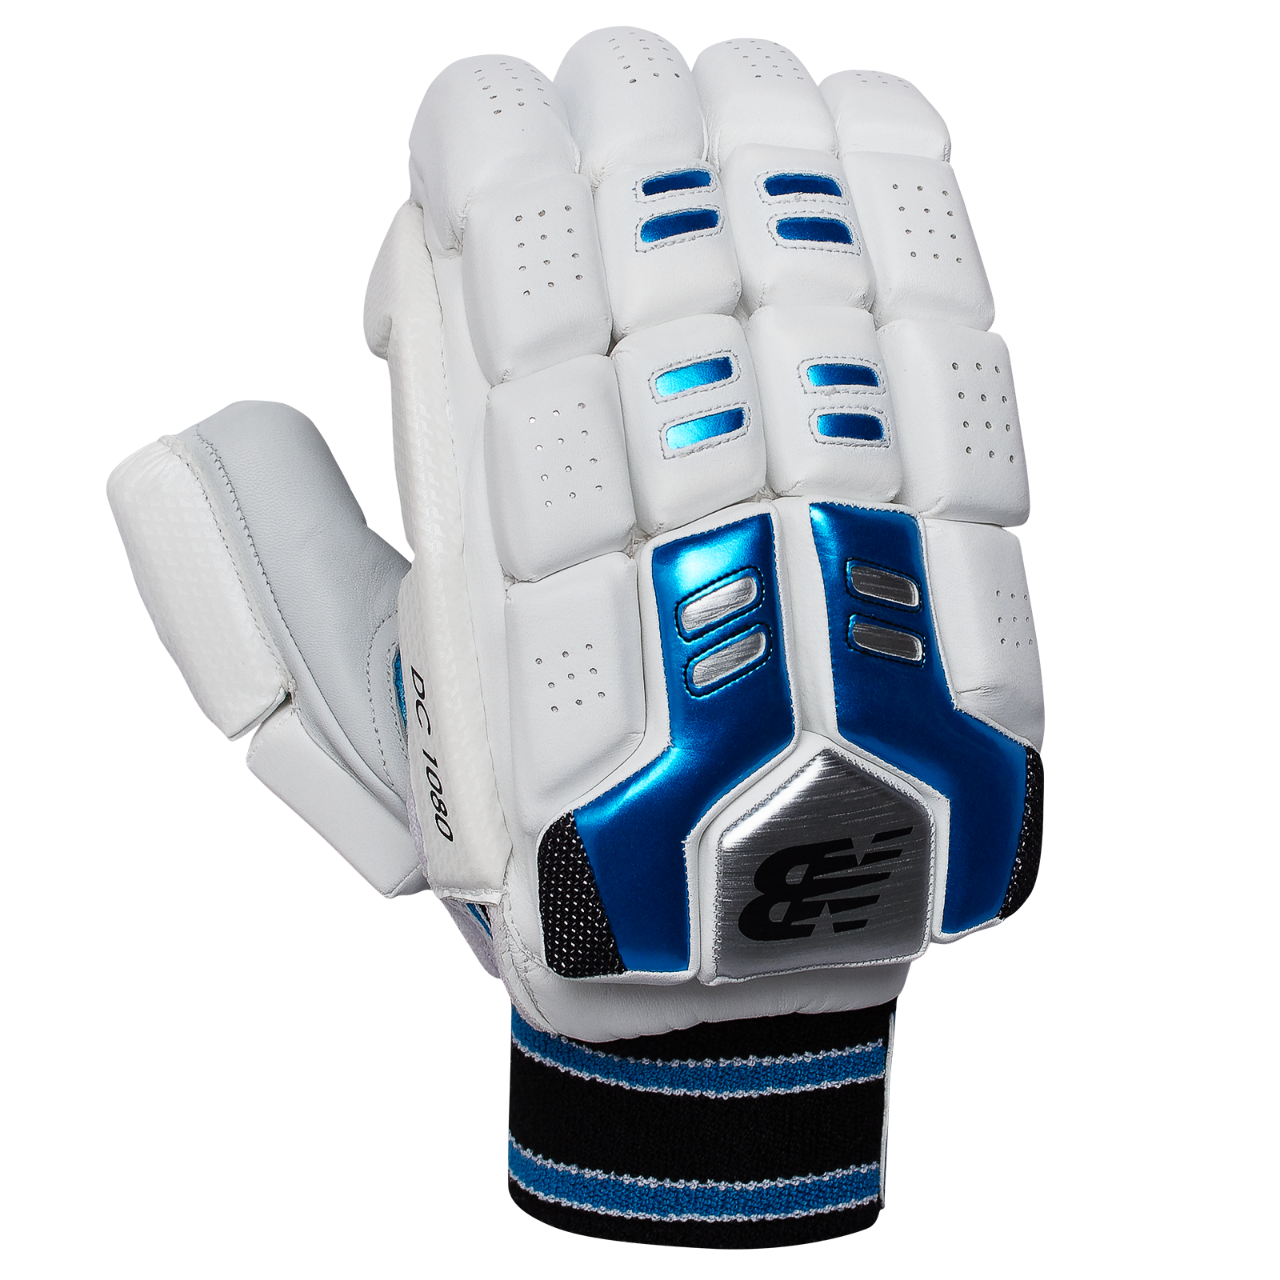 2020 New Balance DC 1080 Batting Gloves